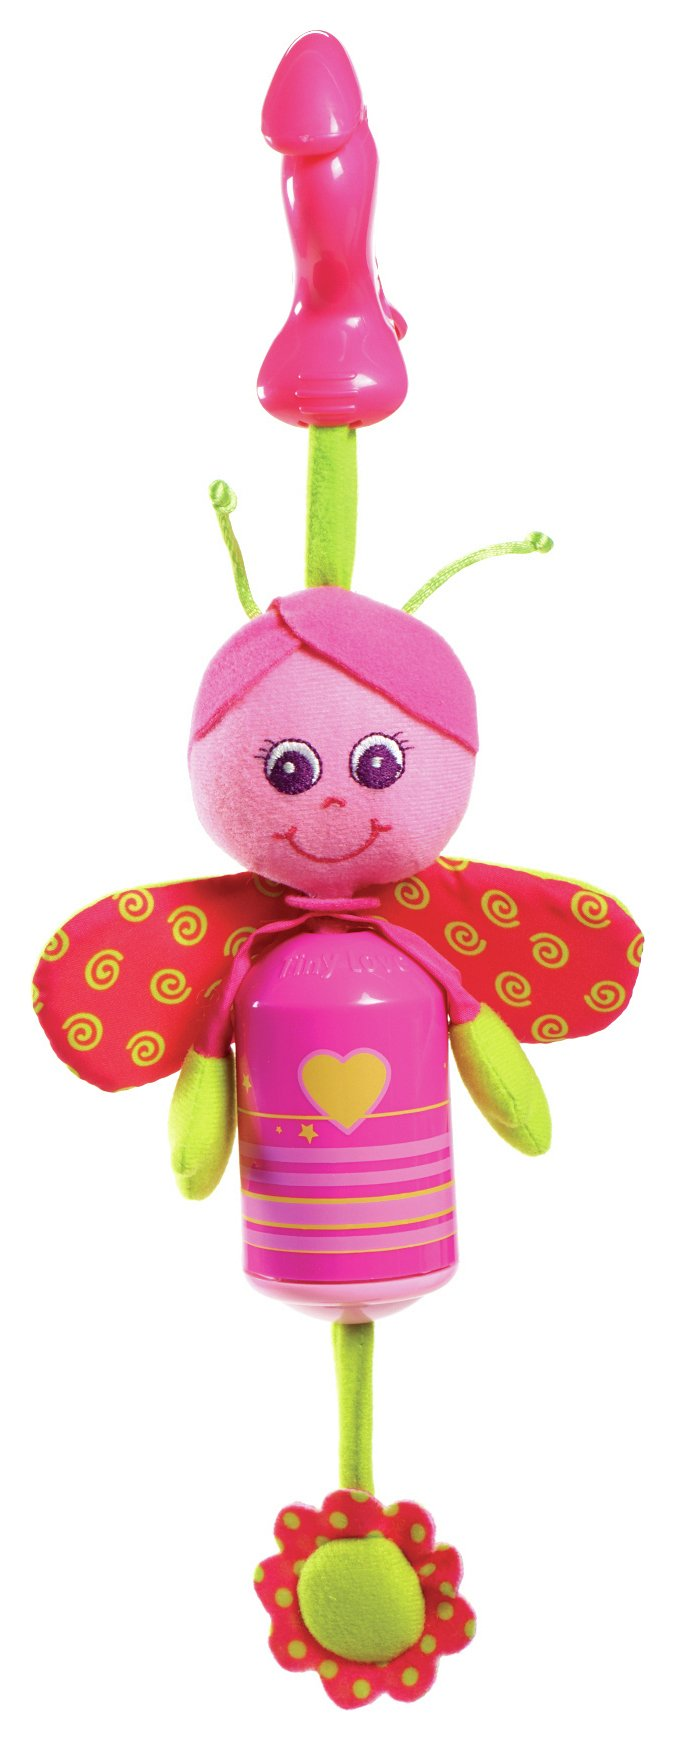 Image of Tiny Love - Wind-Chime - Baby Butterfly - Baby Toy